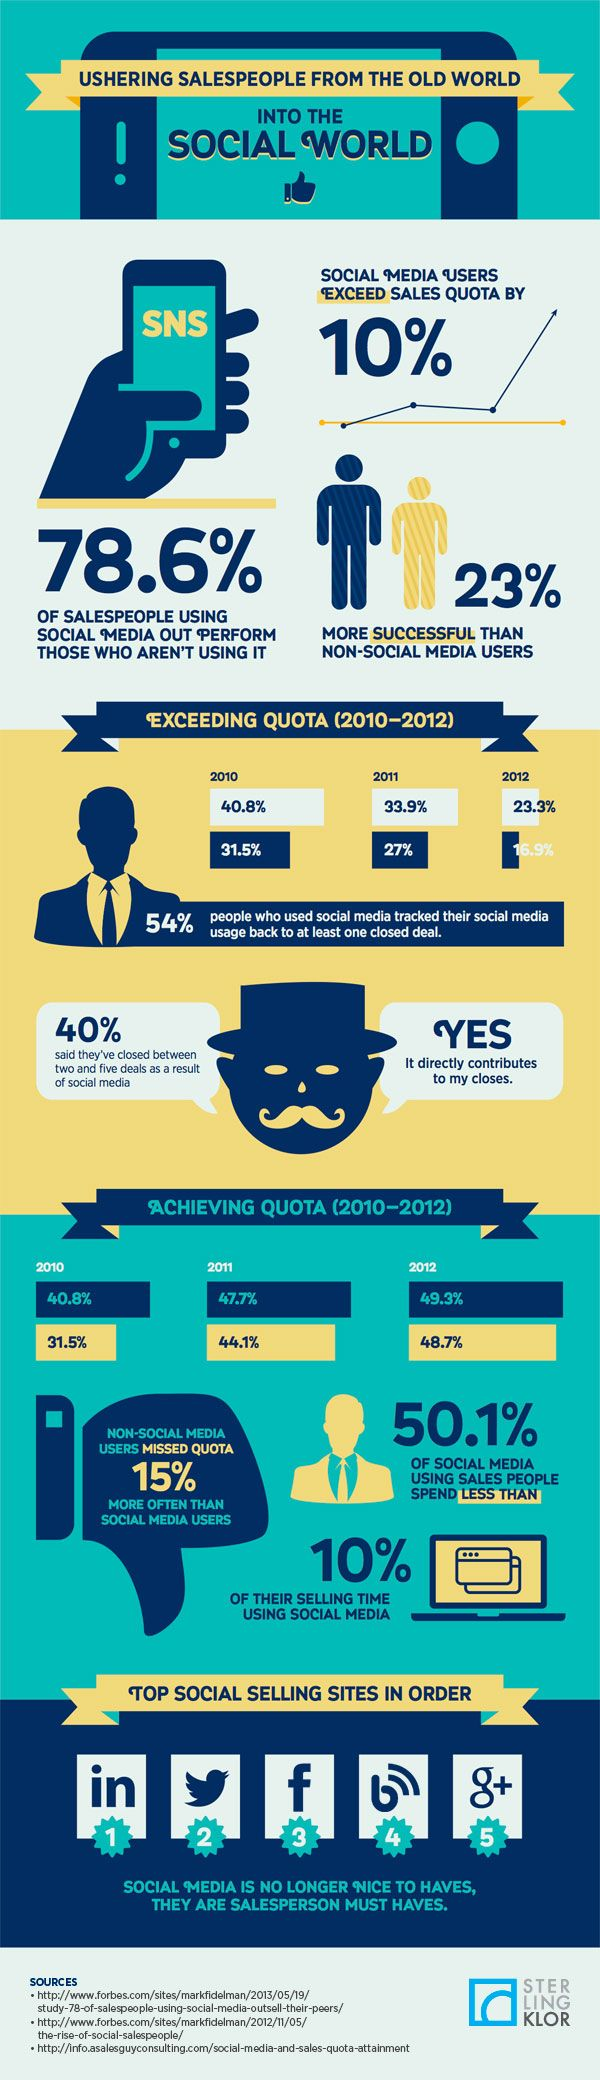 Social Sales Outperforms Traditional Sales